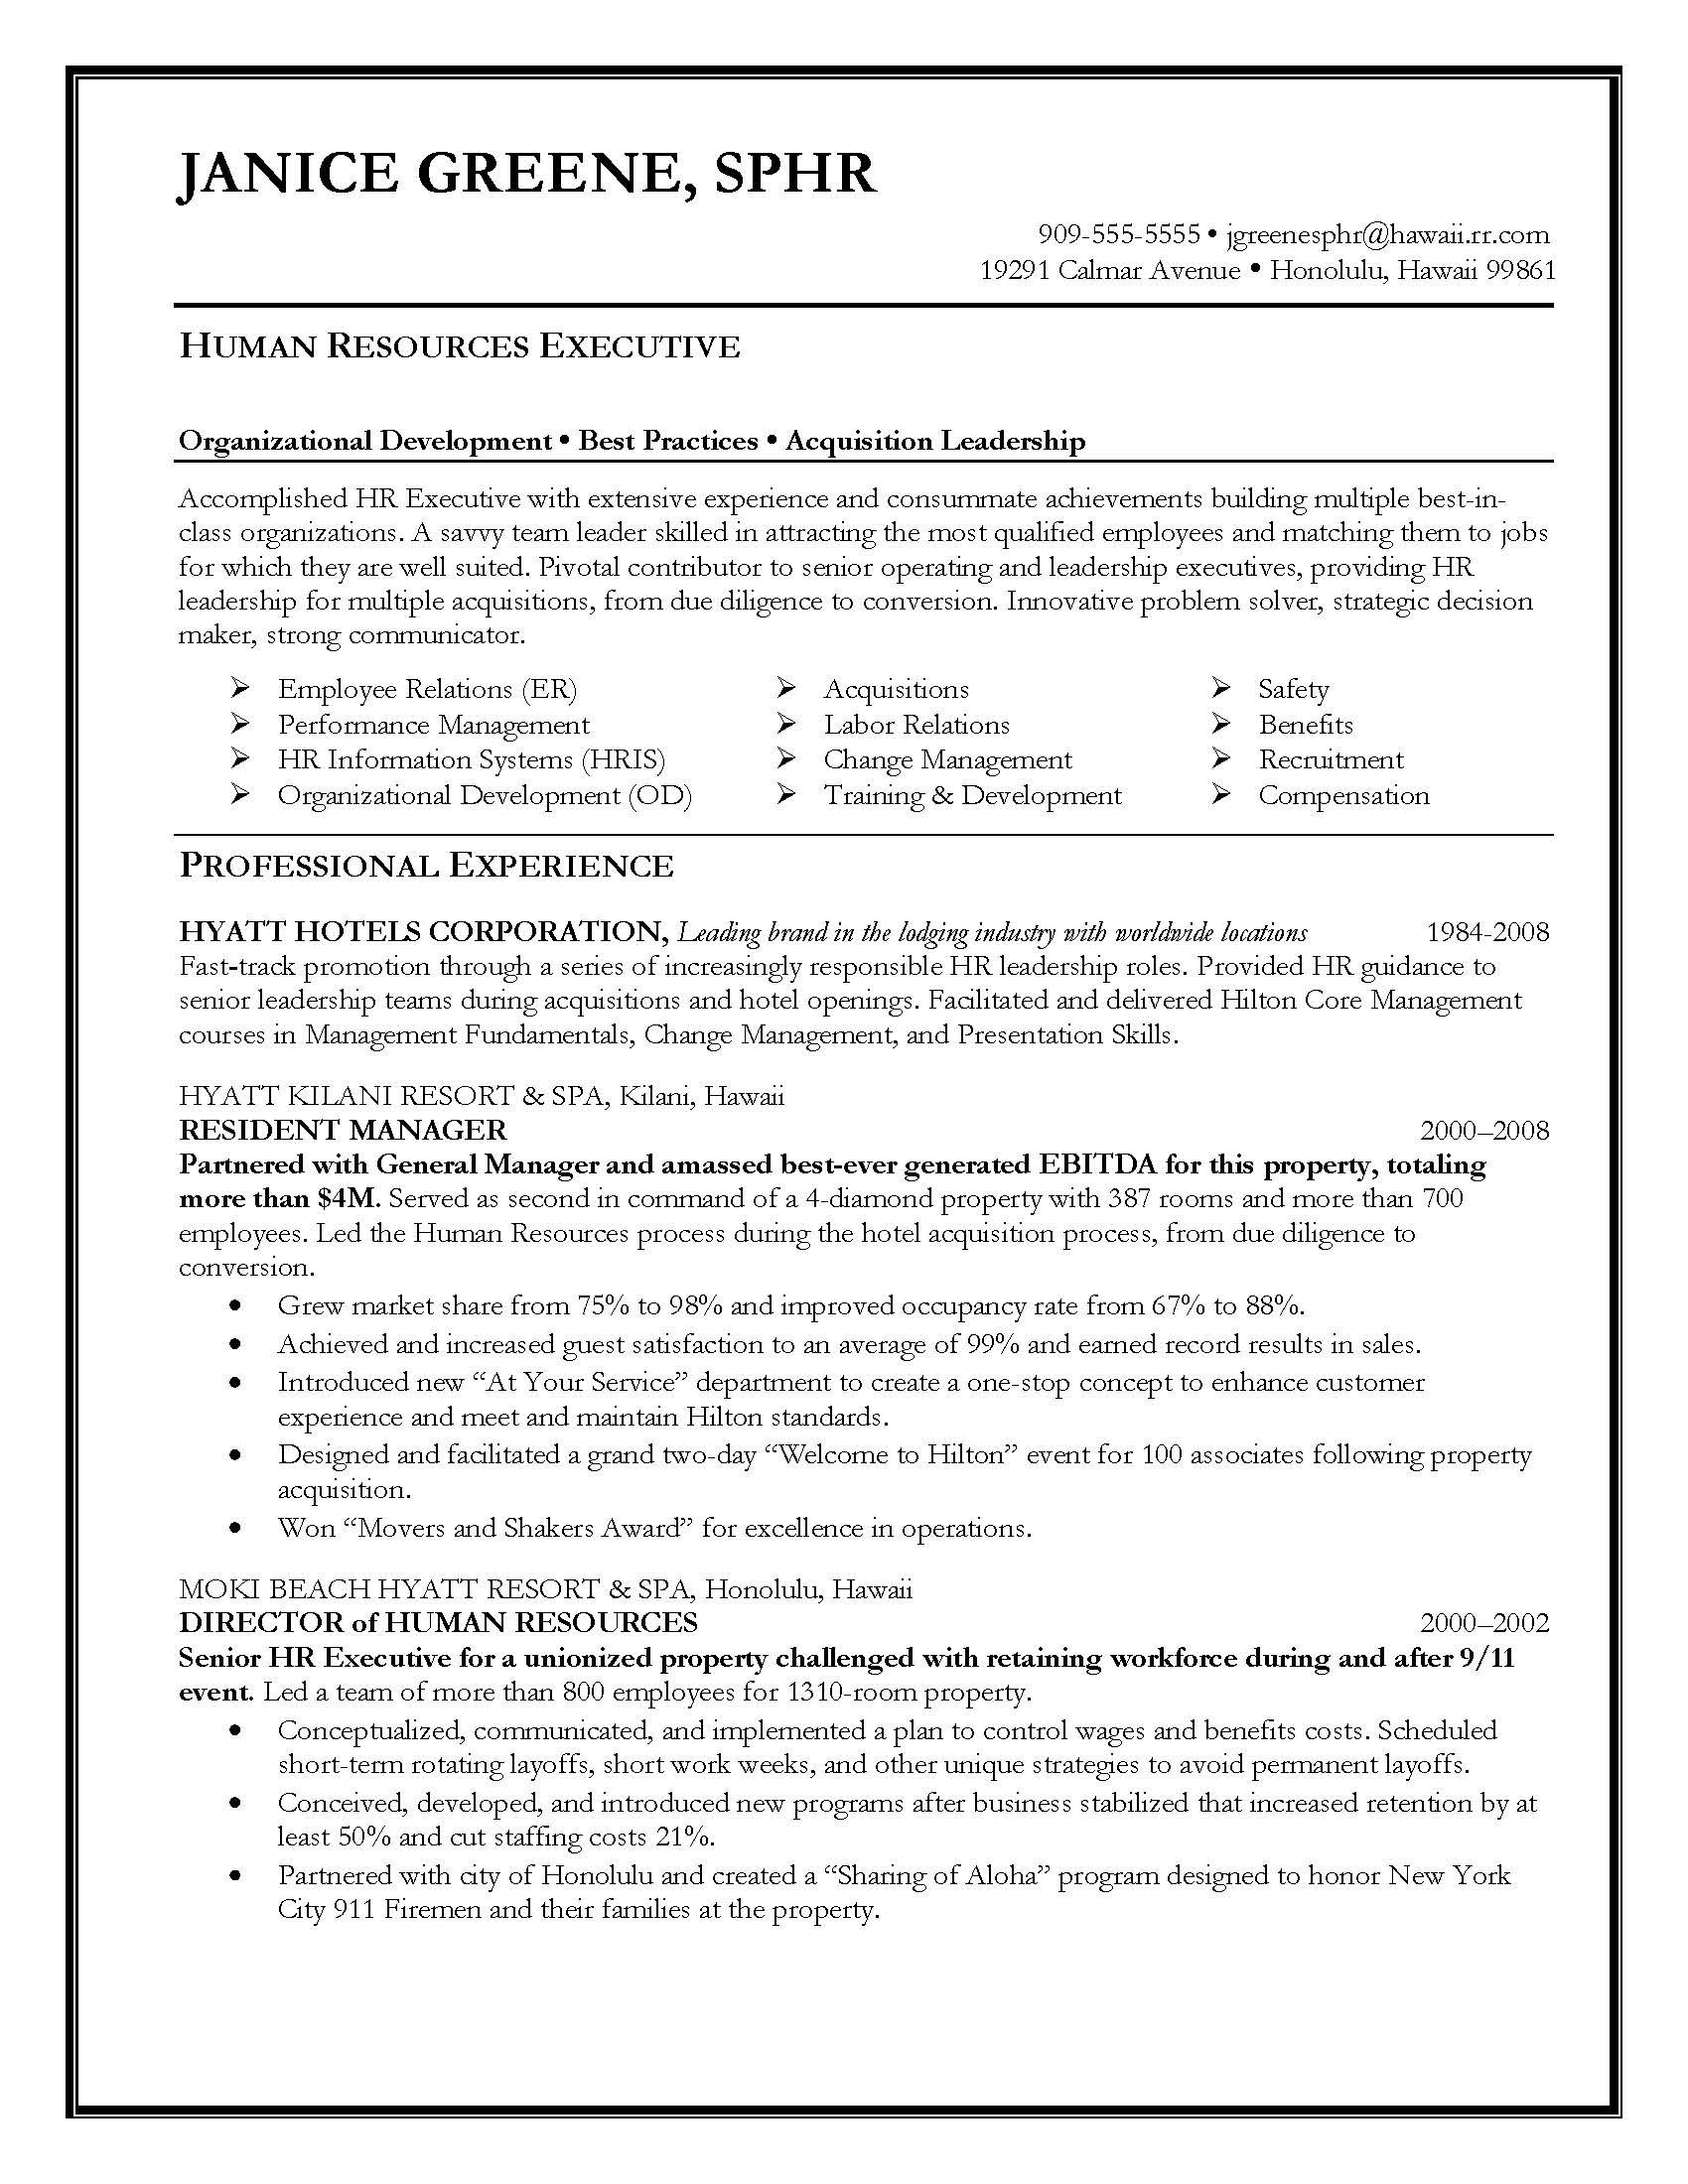 Human Resources Resume Example Resume Samples Program And Finance Manager Fp Anda Devops Sample